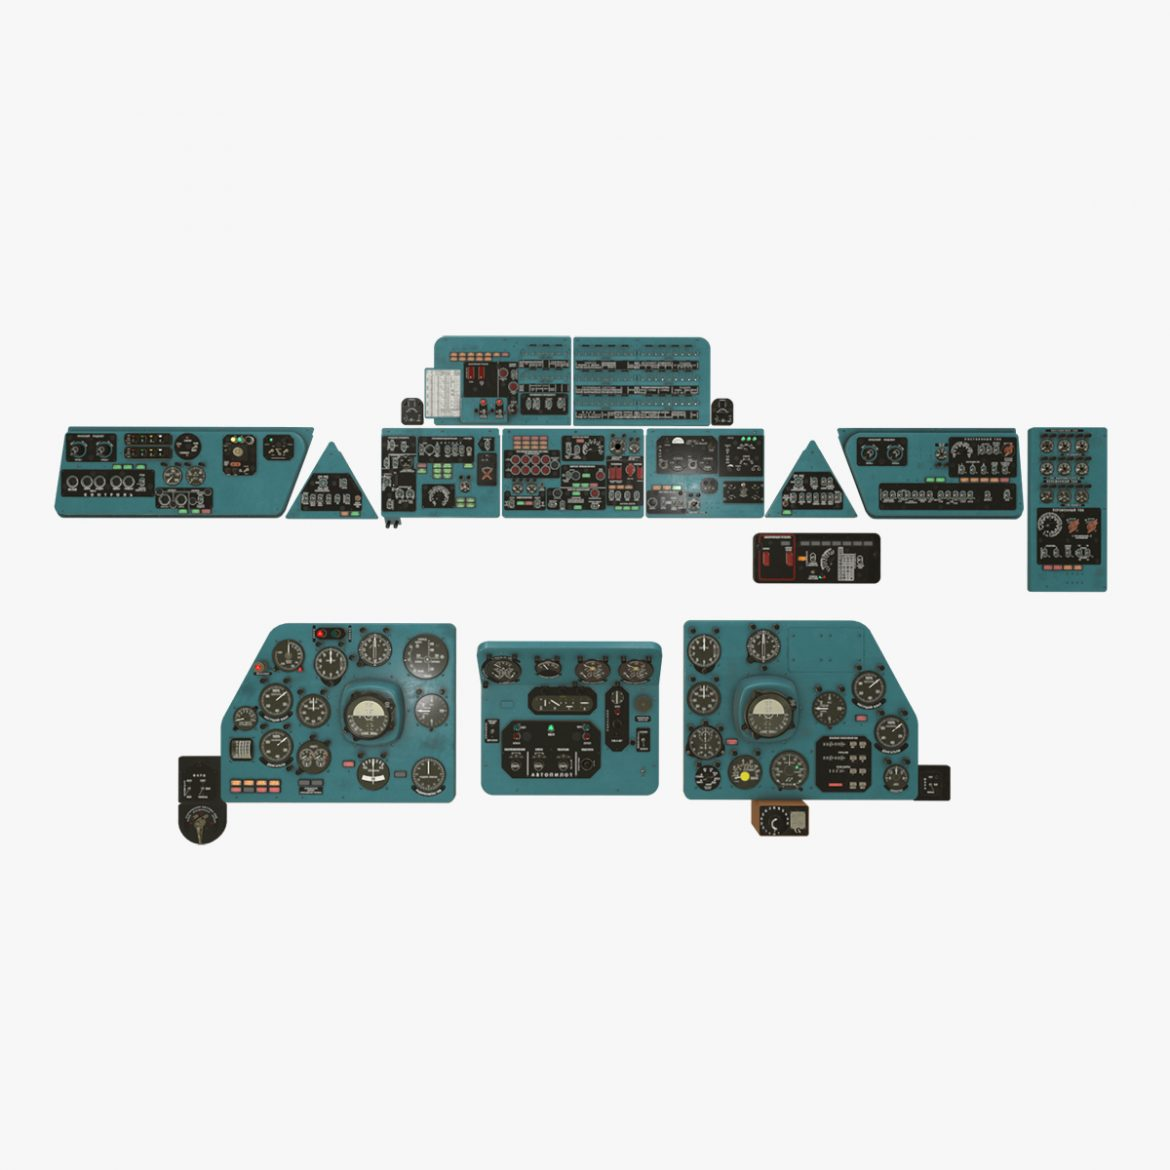 mi-8mt mi-17mt panel boards russian 3d model 3ds max fbx obj 301998